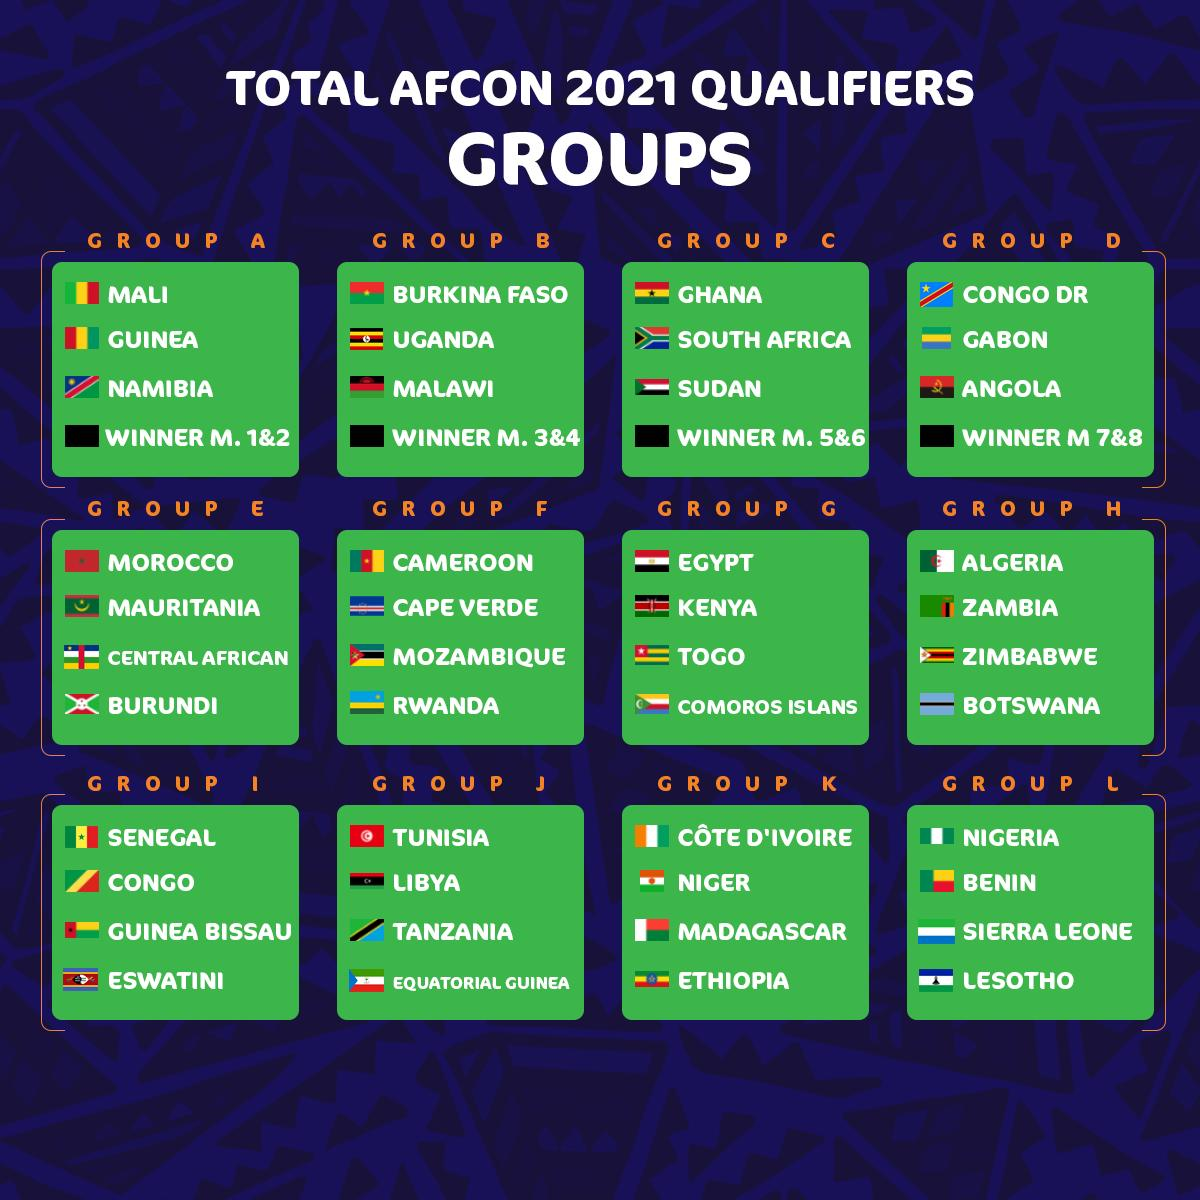 Nigeria To Play Benin, Sierra Leone In 2021 AFCON Qualifiers